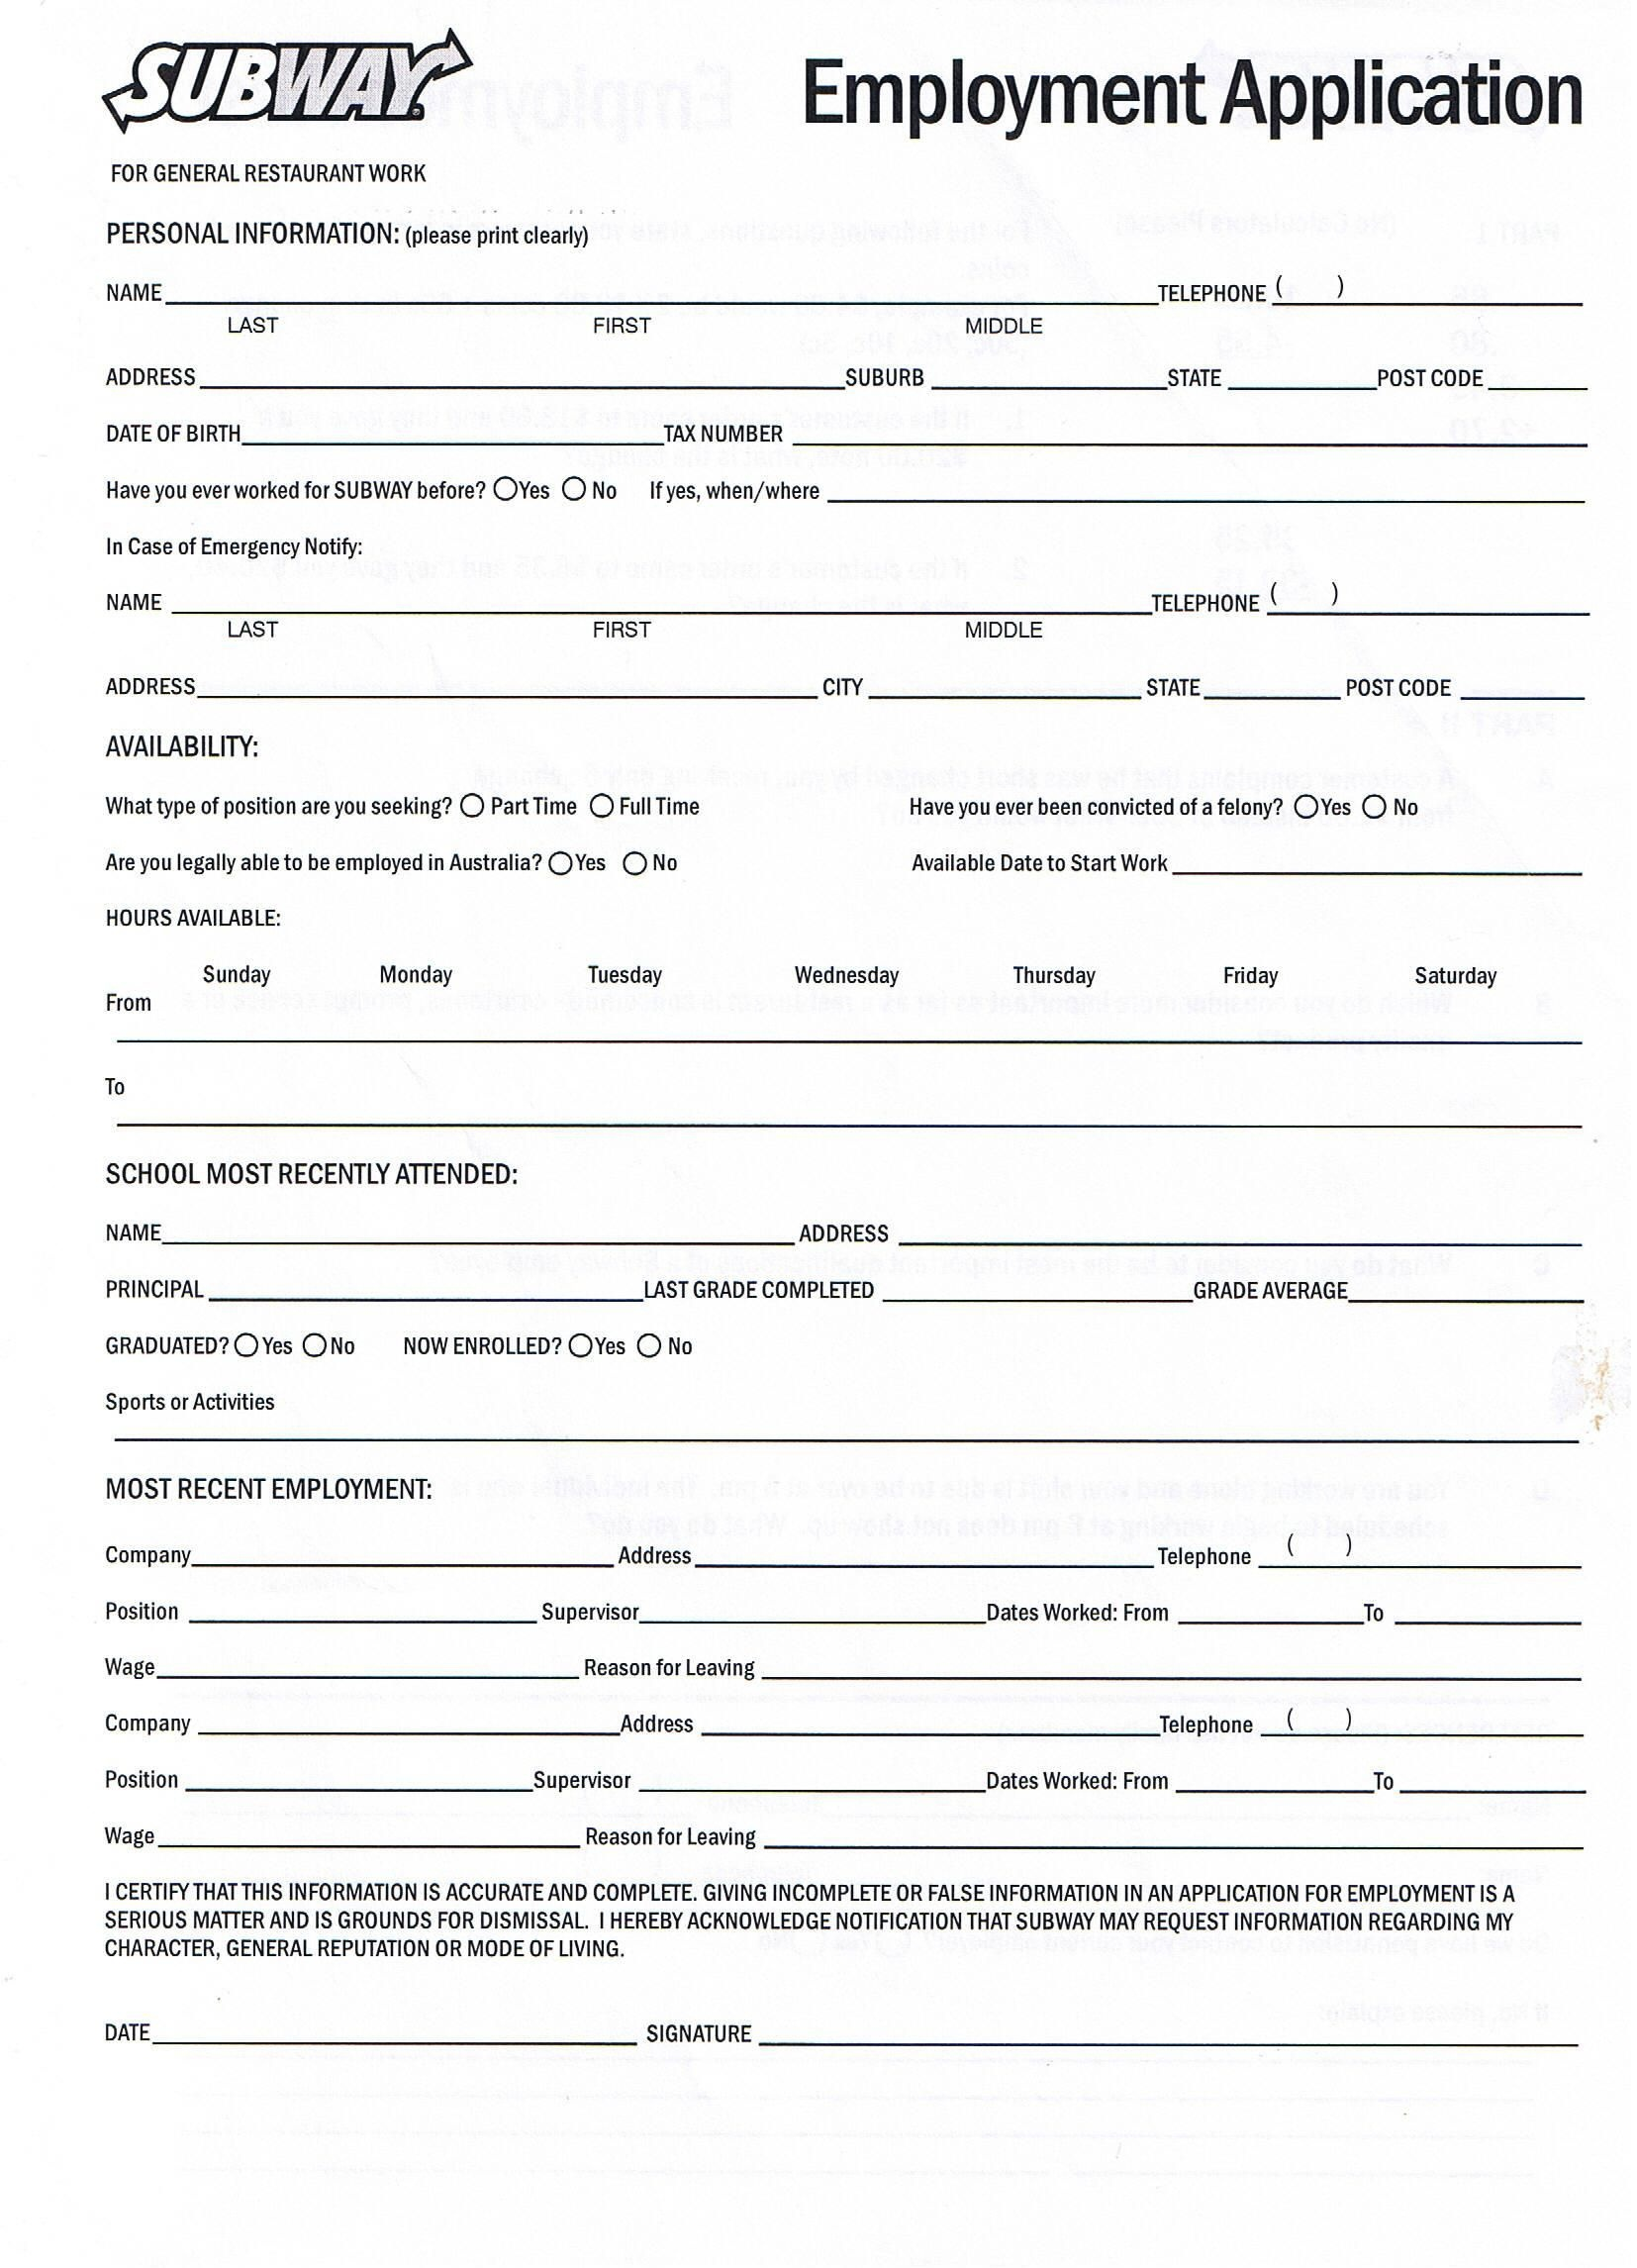 Printable Job Application Forms Online Forms, Download And Print - Free Printable Job Application Form